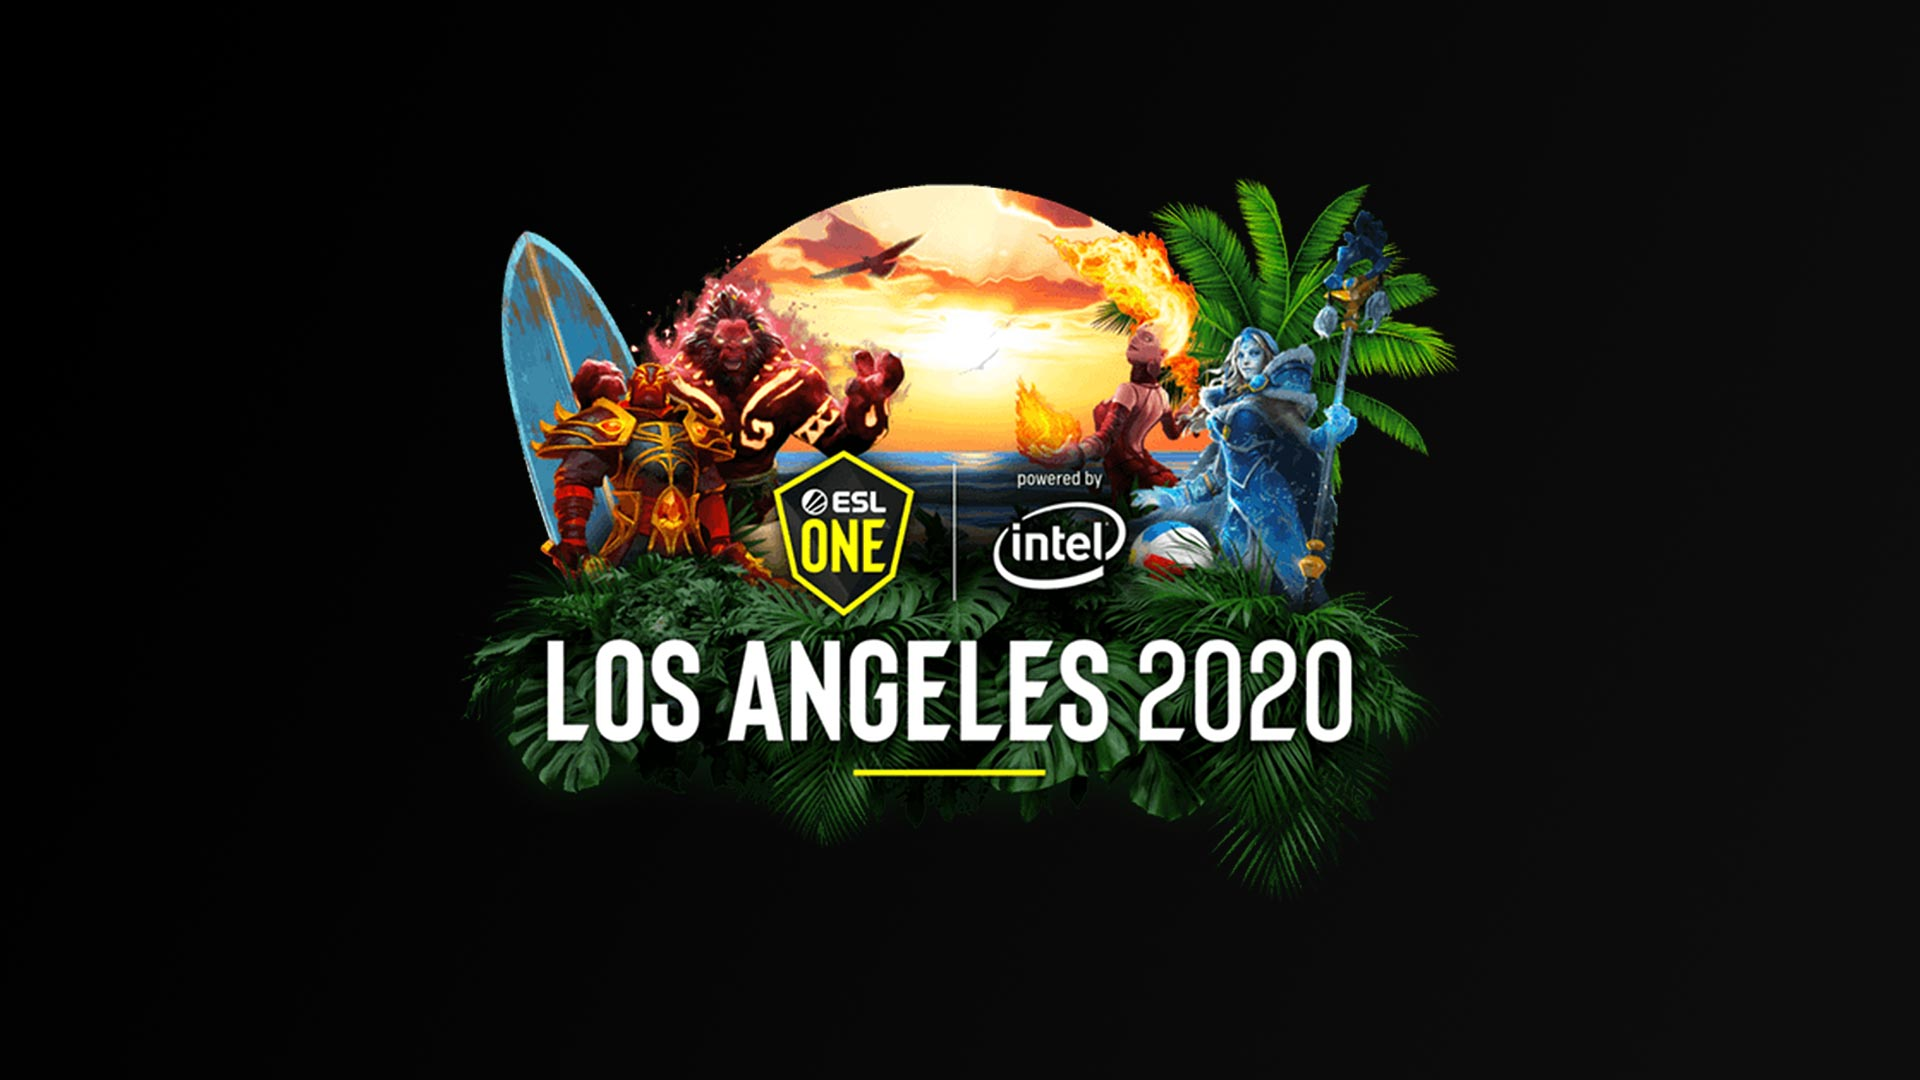 esl los angeles 2020